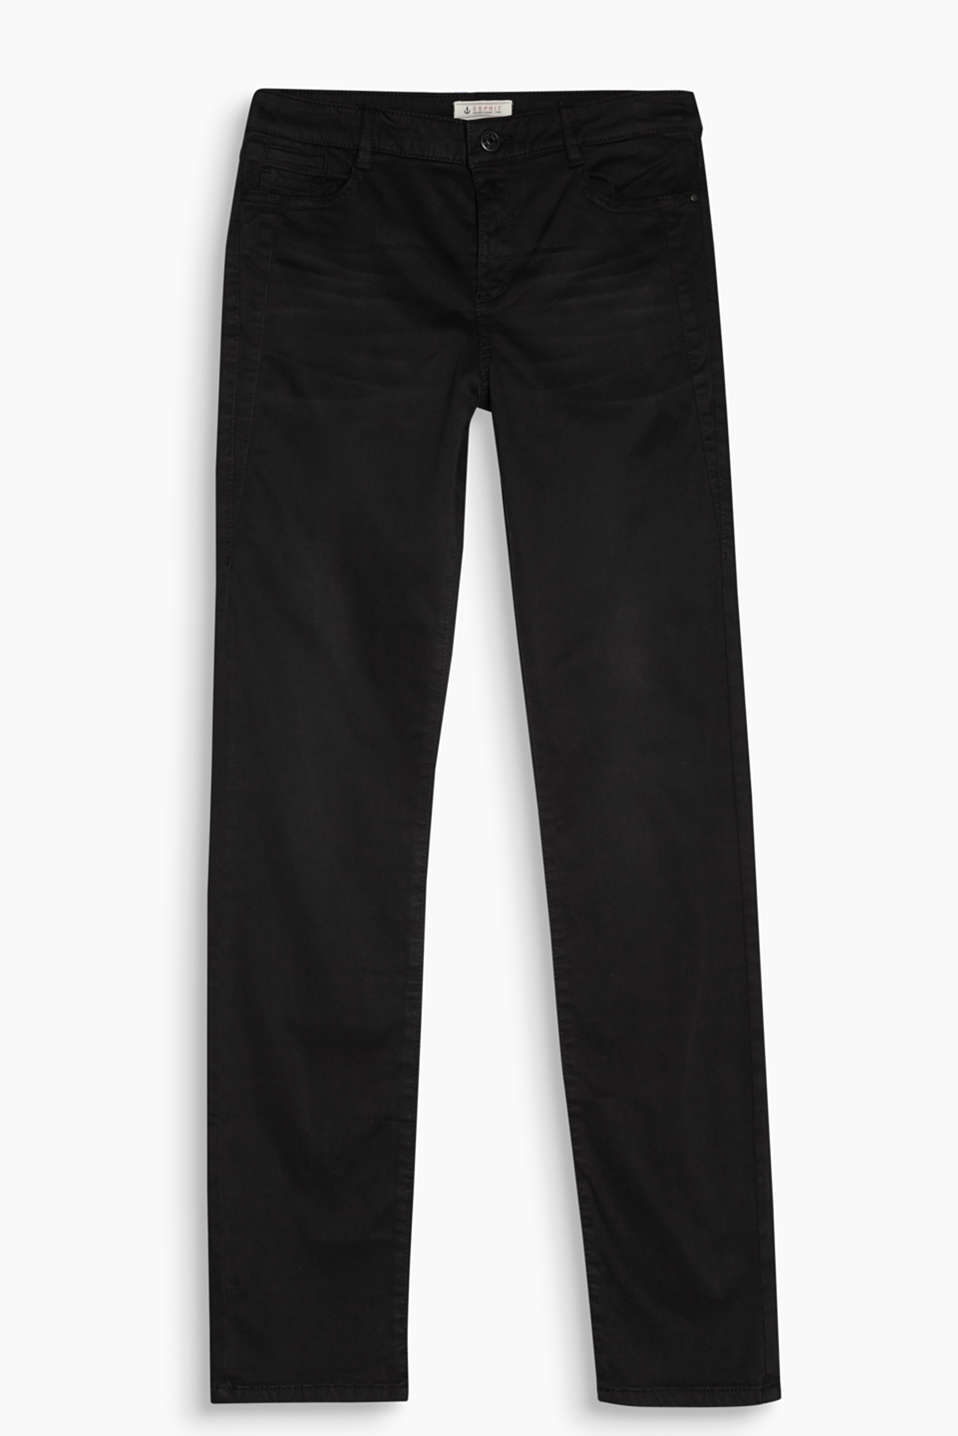 Exceptionally soft and smooth stretch trousers with garment-washed effects